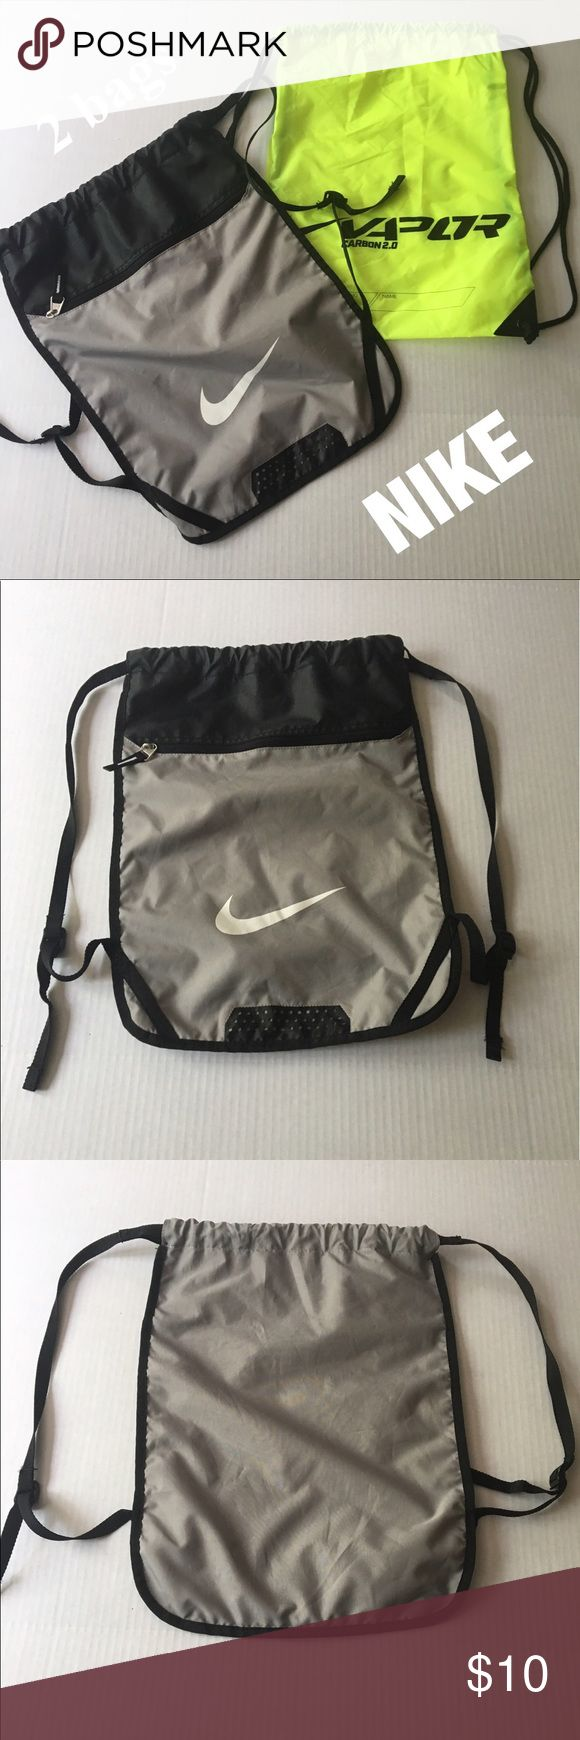 Nike sport bags 2 Nike brand sport bags! Sold together. The gray one is more heavy duty and the green is lighter and thinner. Both pull straps, the gray with adjustable straps and additional pockets inside and out!! Nike Bags